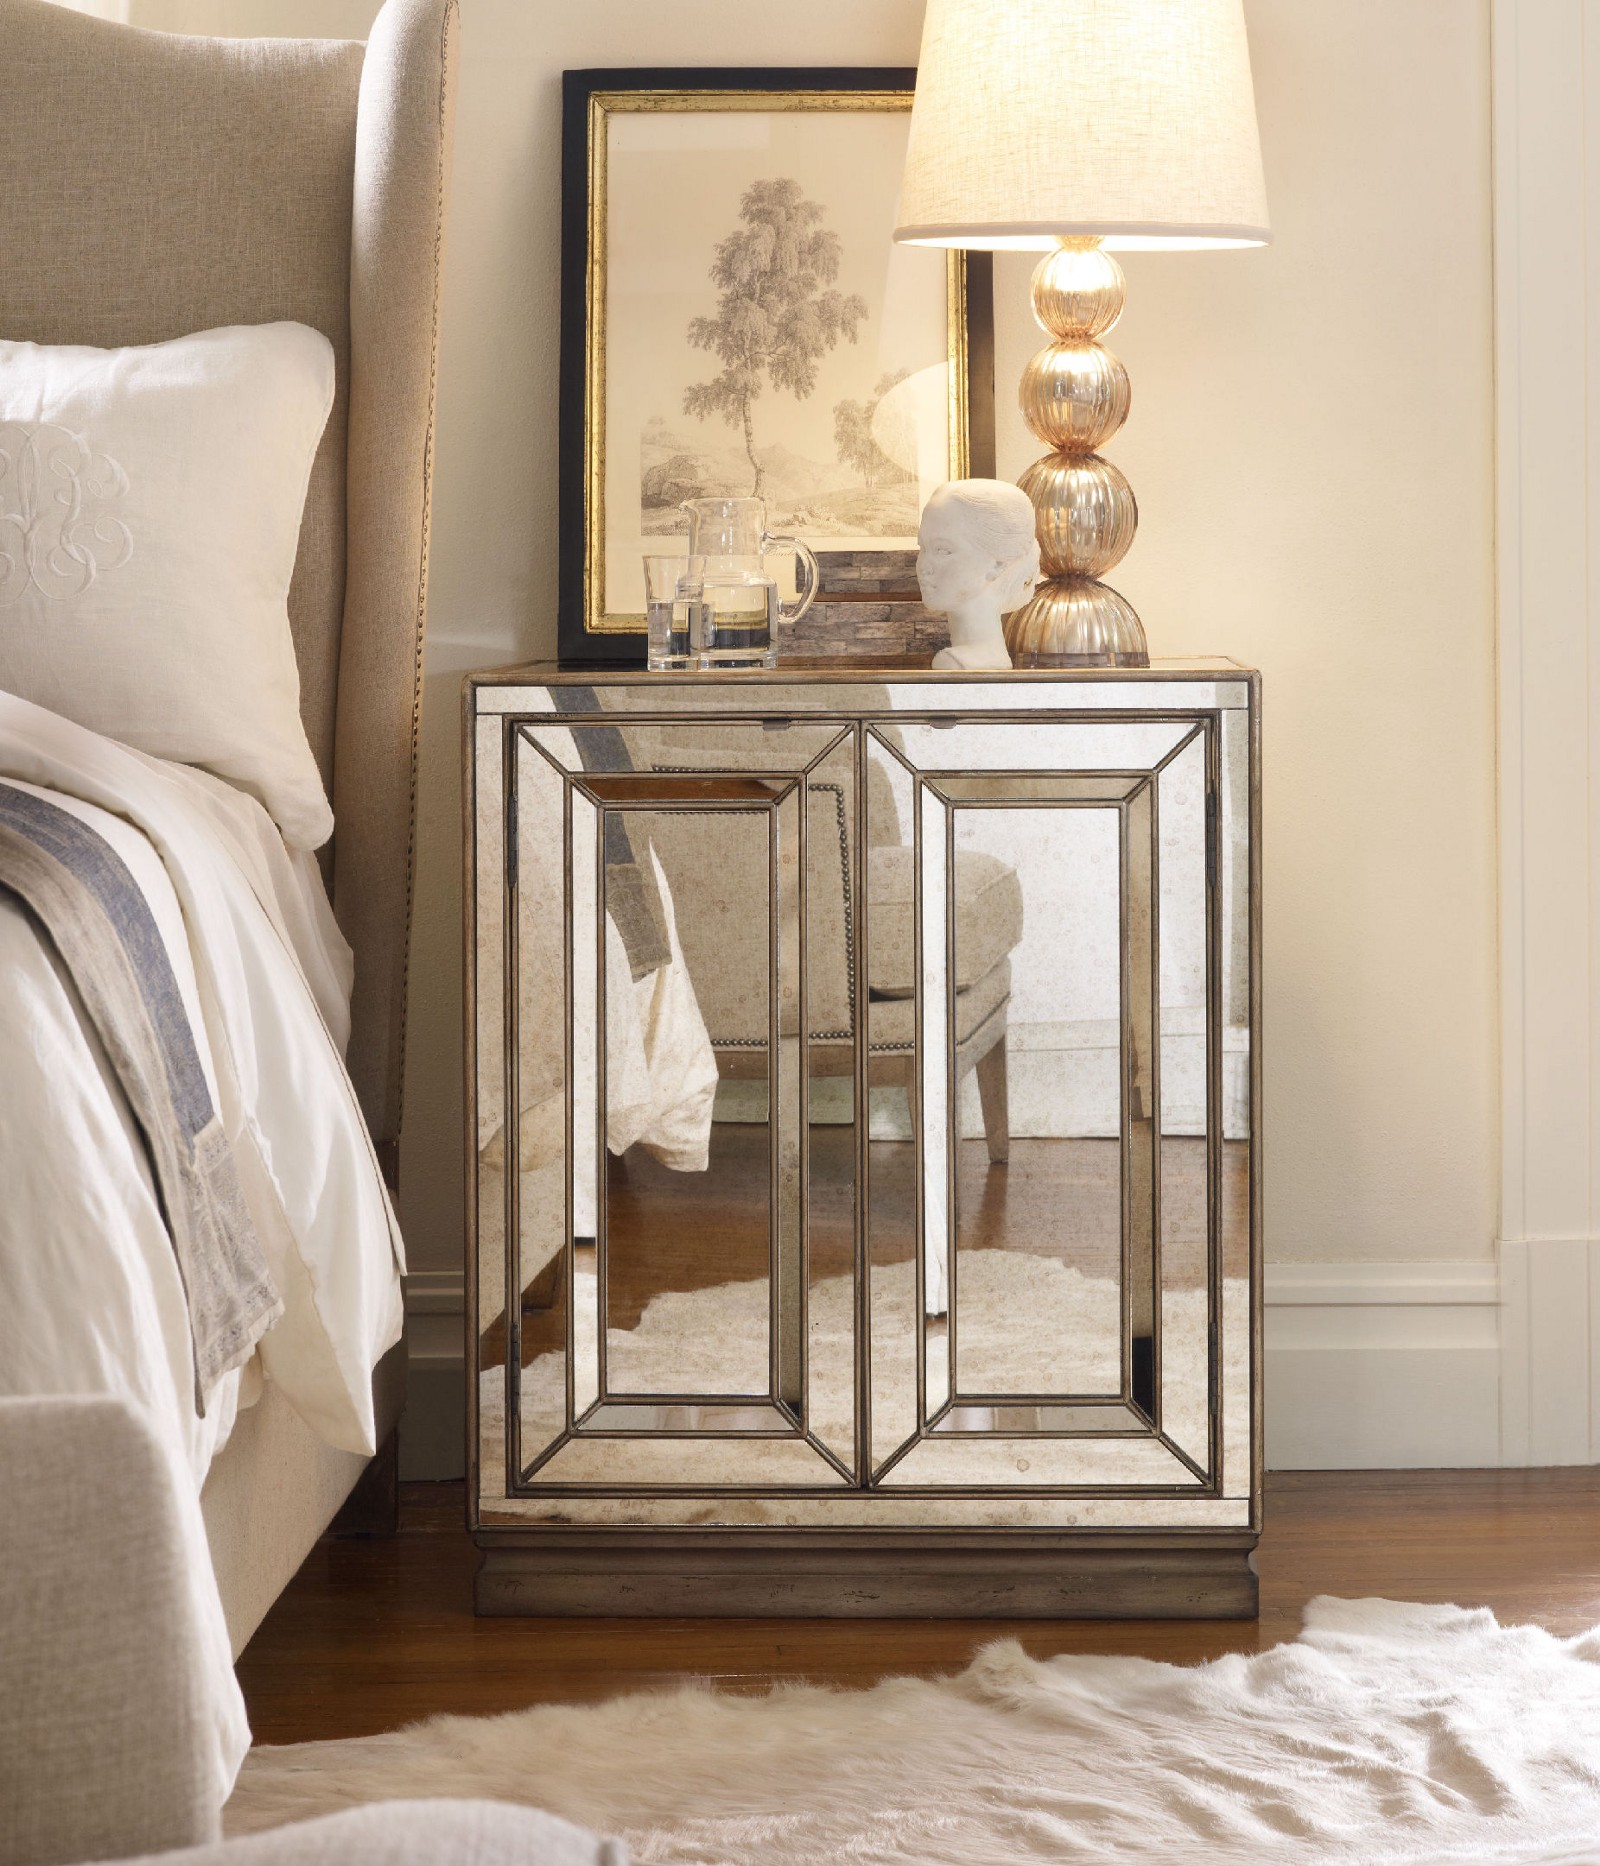 Inspiring Feng Shui Method About The Presence Of Mirrored